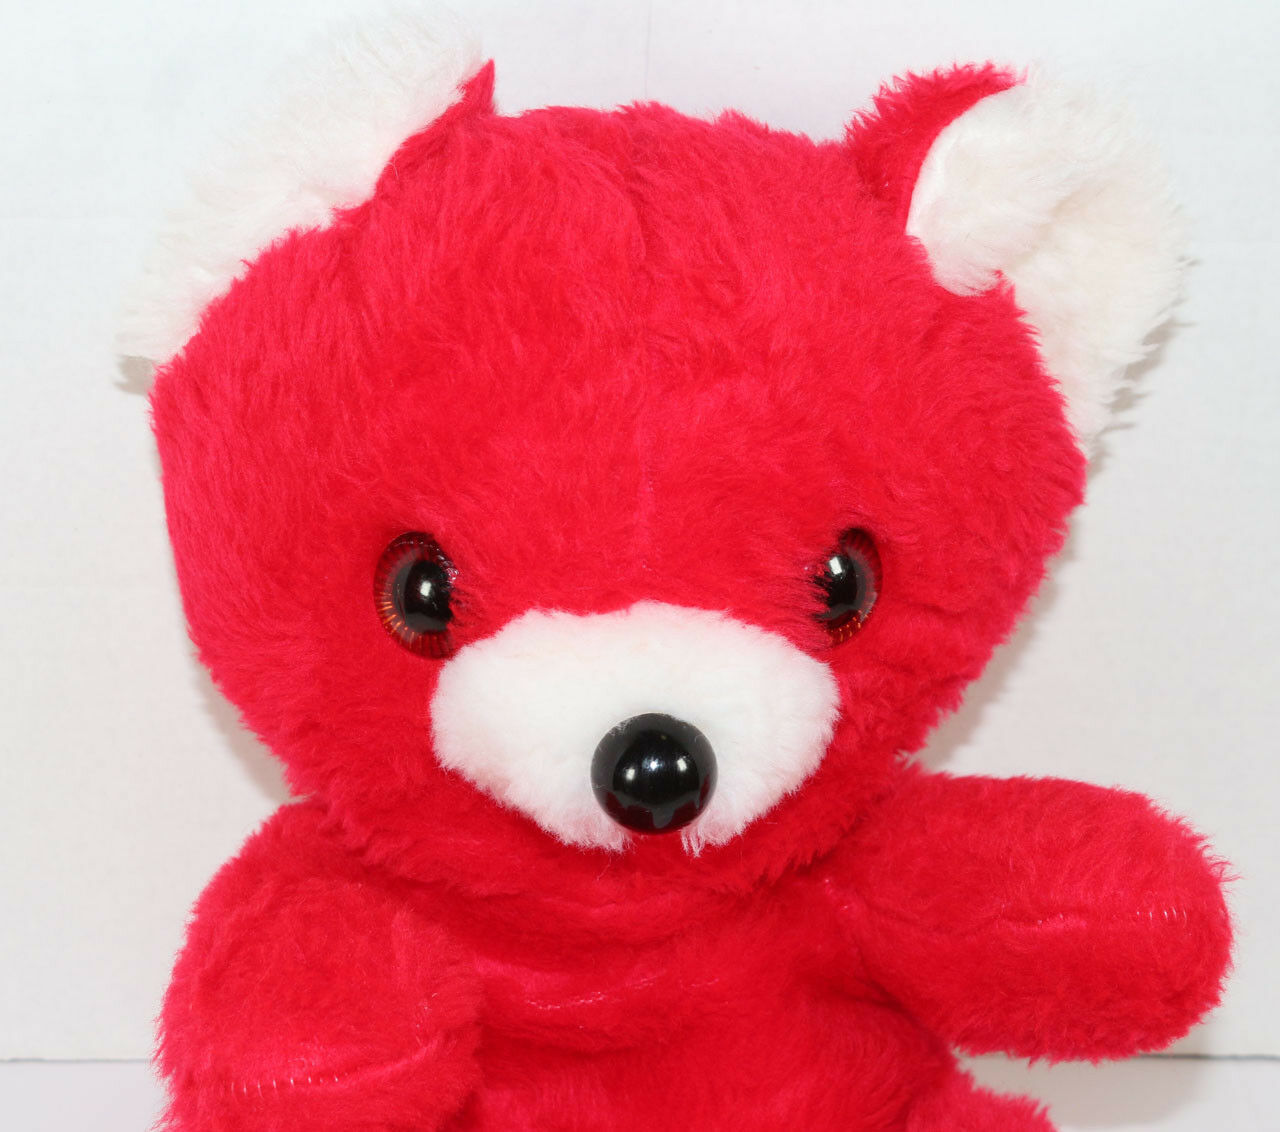 Vintage COMMONWEALTH RED AND WHITE VALENTINE TEDDY BEAR Stuffed Plush ANIMAL TOY